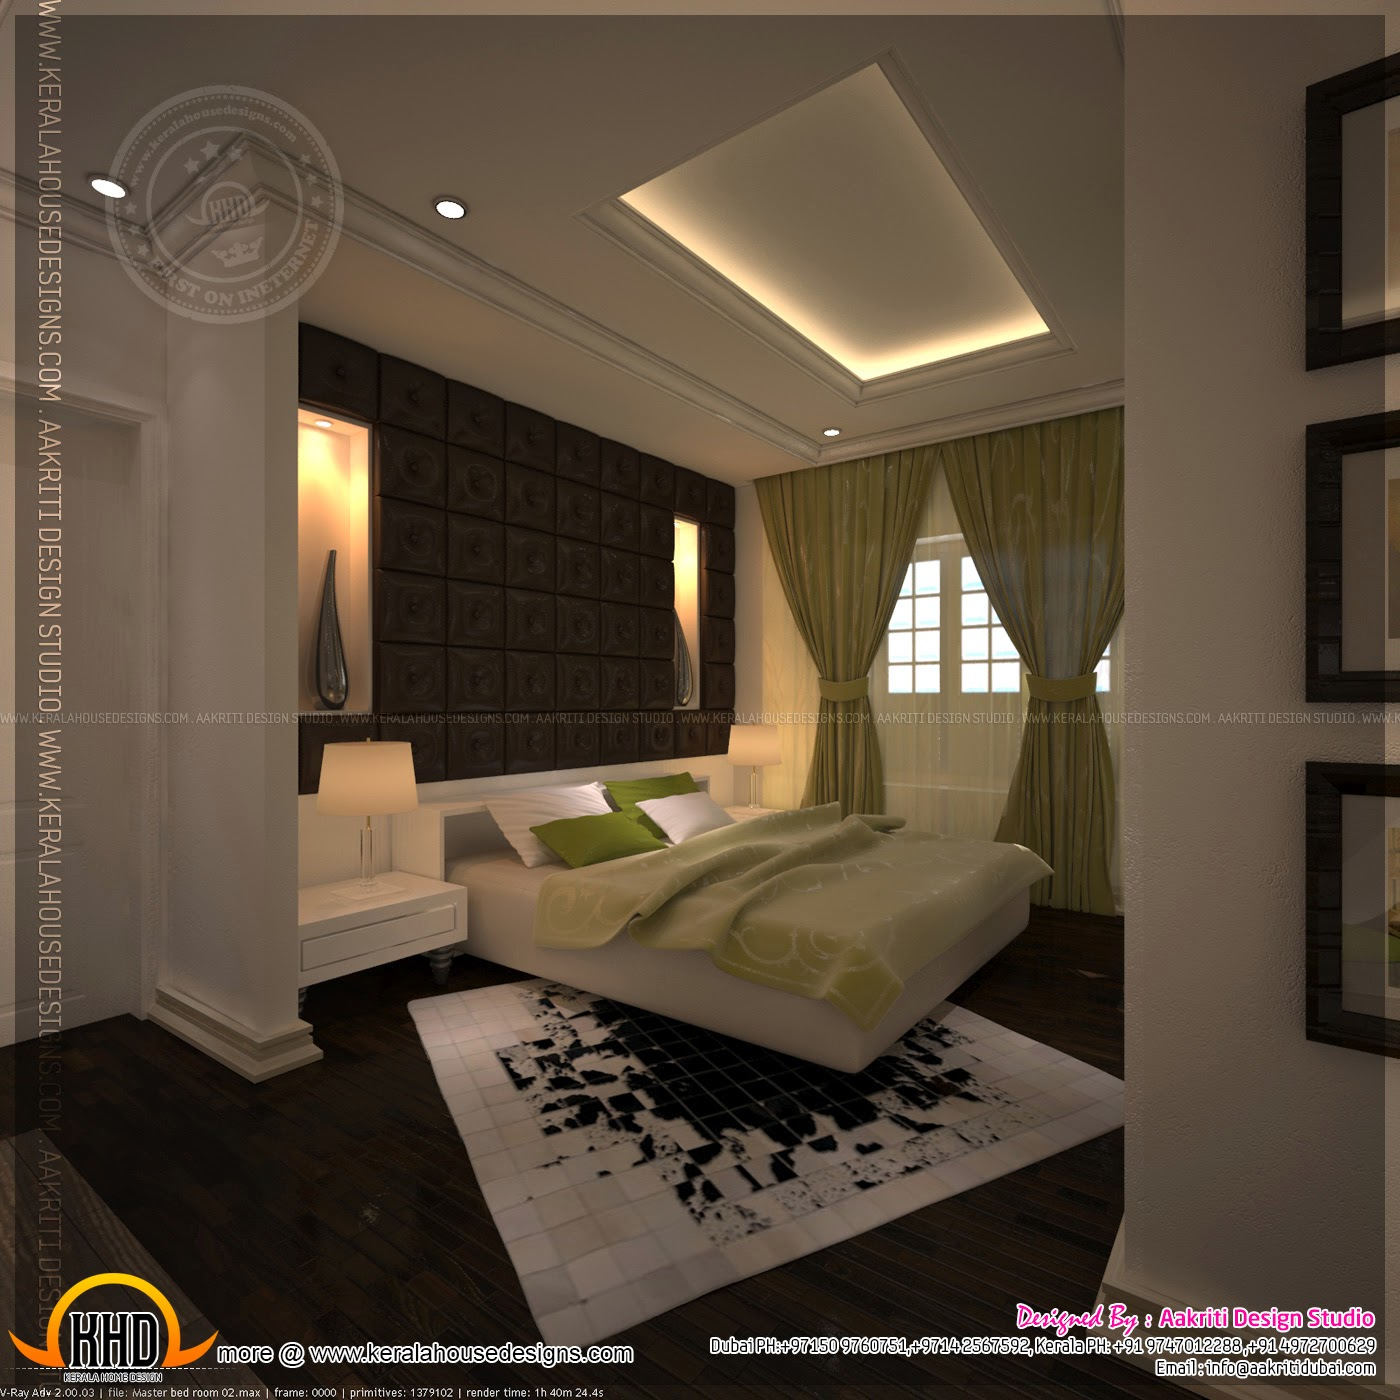 Master bedroom and bathroom interior design kerala home for Interior design images for bedrooms